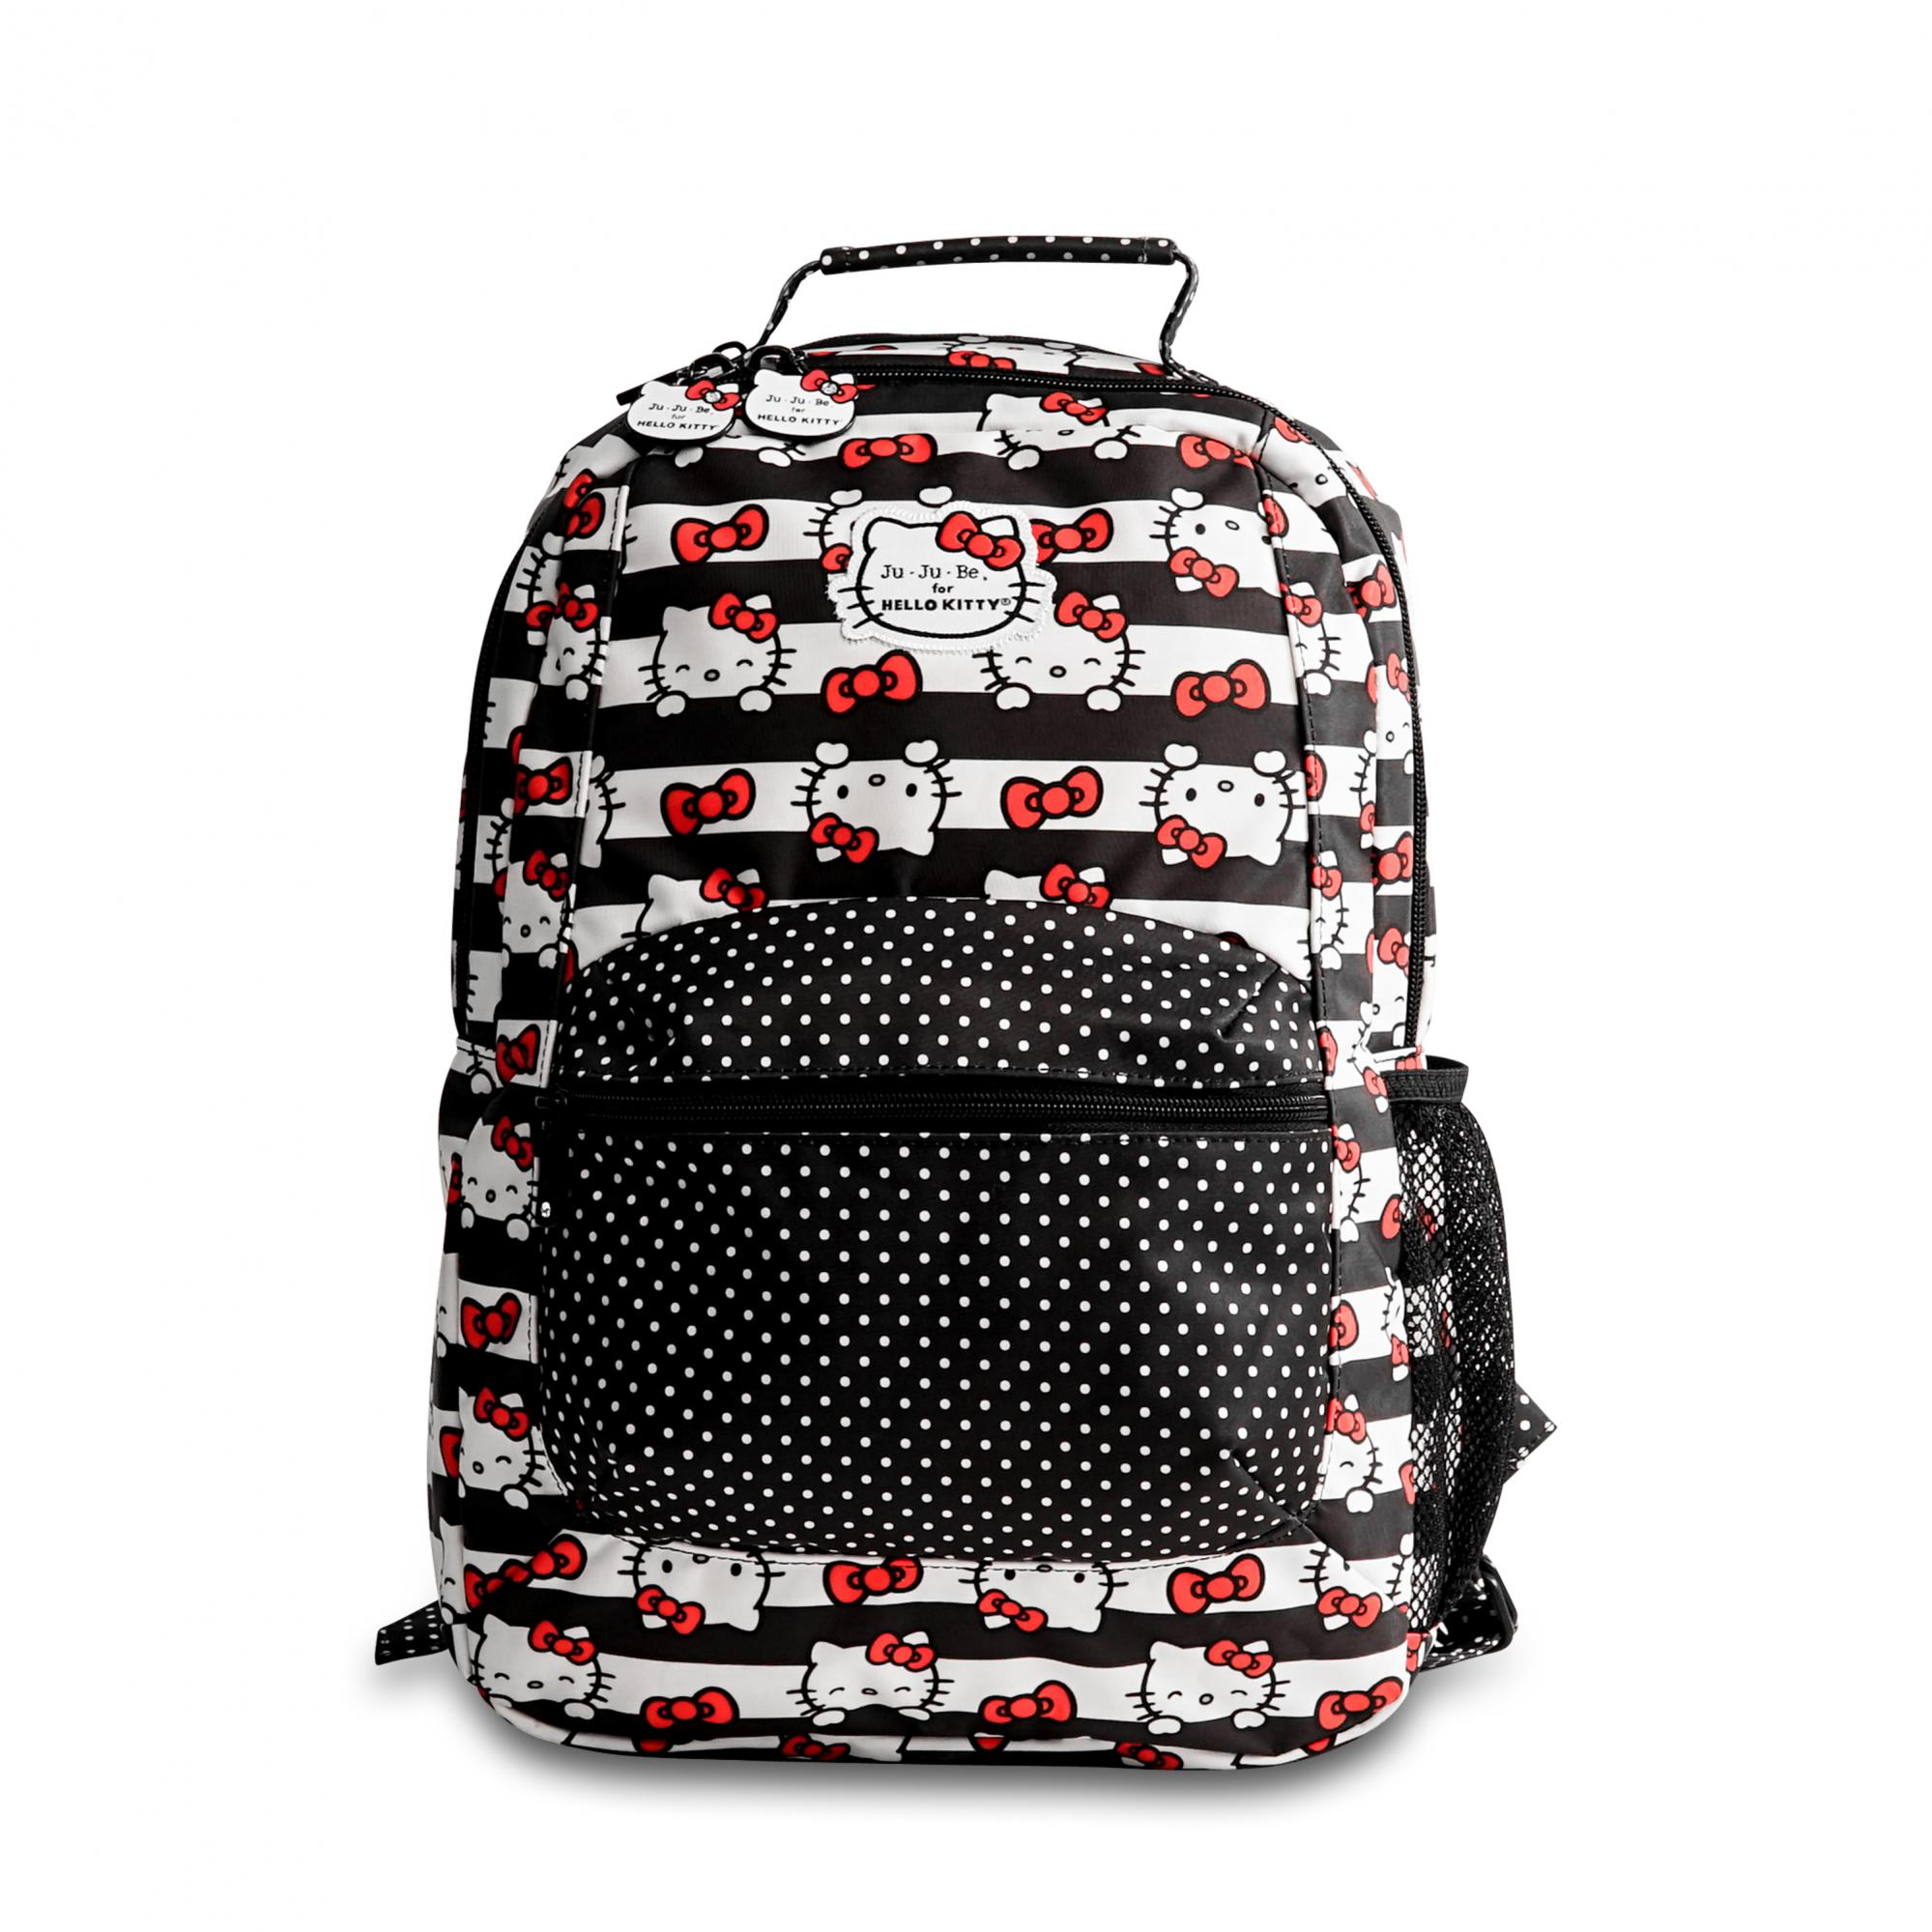 ju-ju-be-hello-kitty-dots-and-stripes-be-packed.JPG